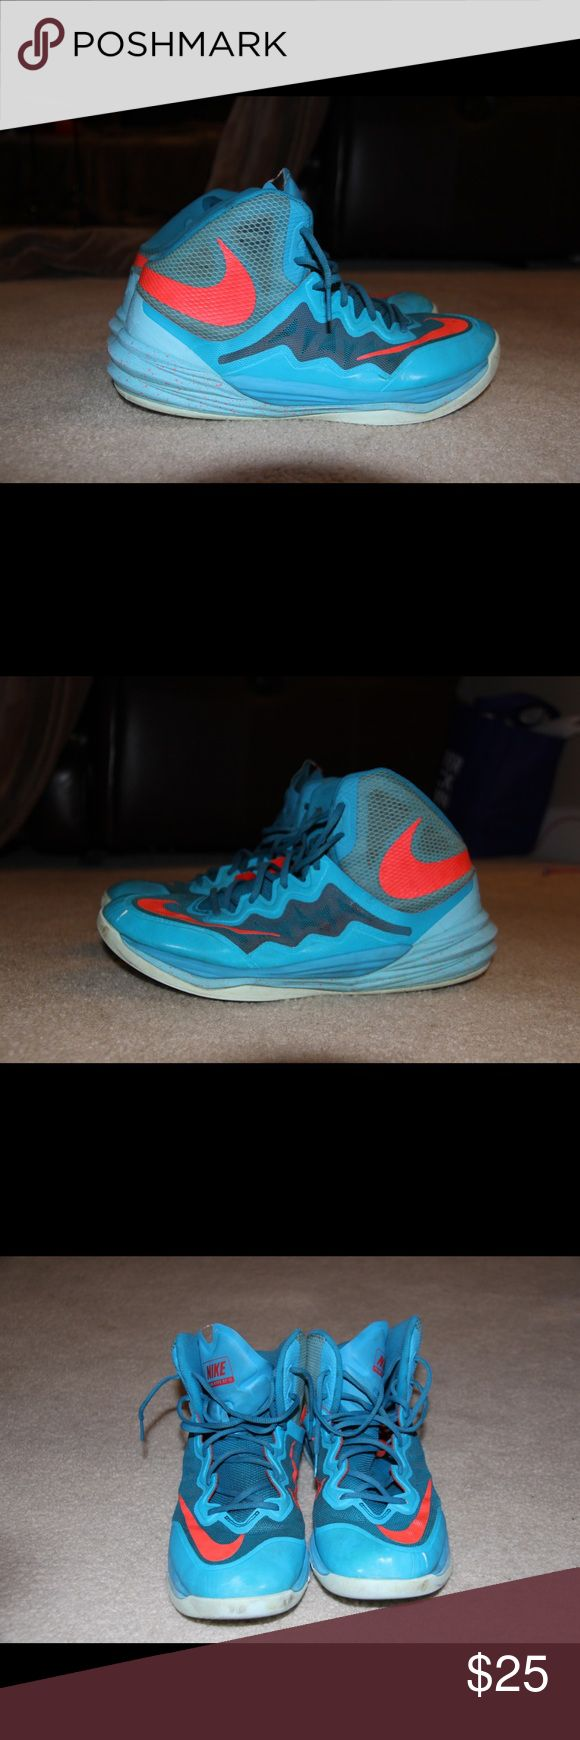 Nike basketball shoes Nike Hype df ii light blues. High top basketball shoe. Original insoles and laces. Shoes are in good condition. With minimum scuffing on bottoms. Toe and heel has few light scratches. Teal and Light blue colorway. Shoes has no odor and kept in a smoke free environment. Condition: 7/10 Nike Shoes Athletic Shoes